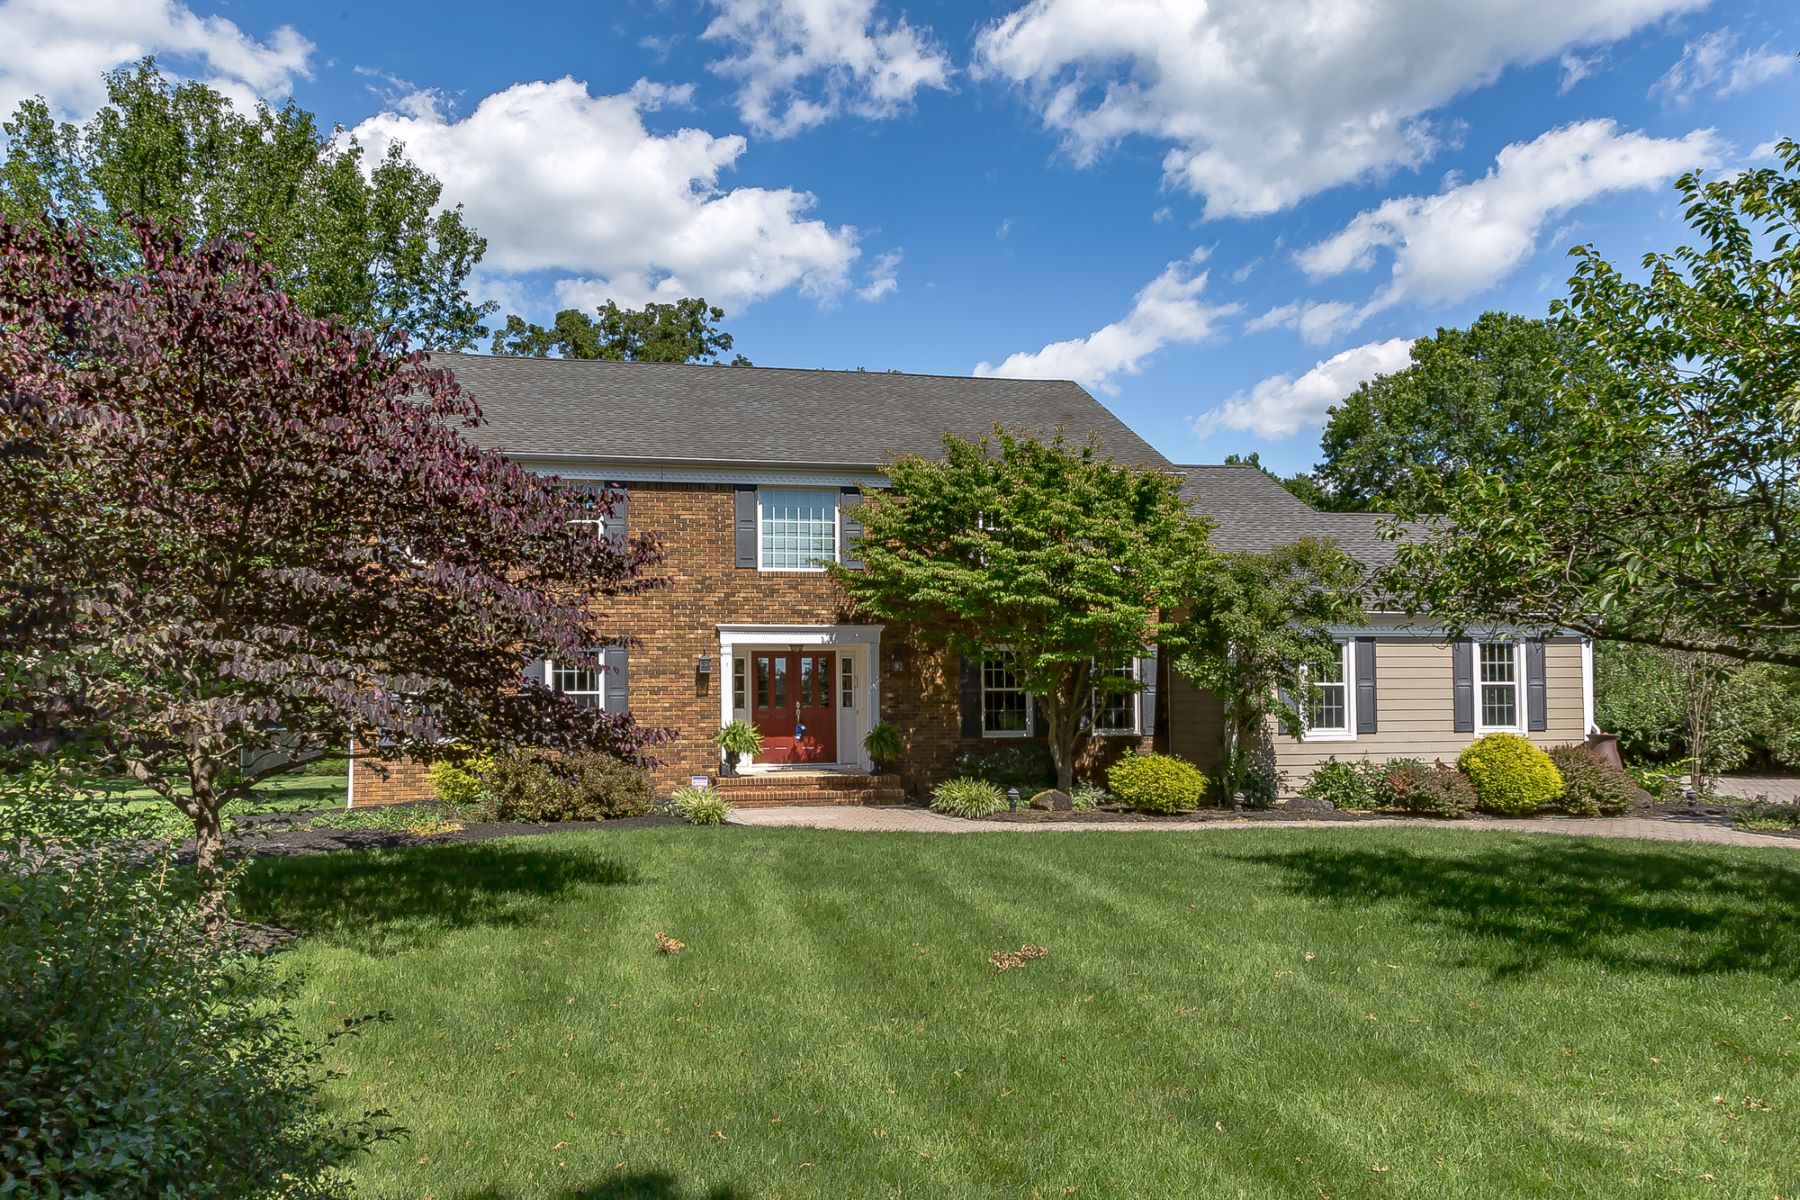 Single Family Homes for Sale at Distinguished Colonial 154 Woods End Basking Ridge, New Jersey 07920 United States